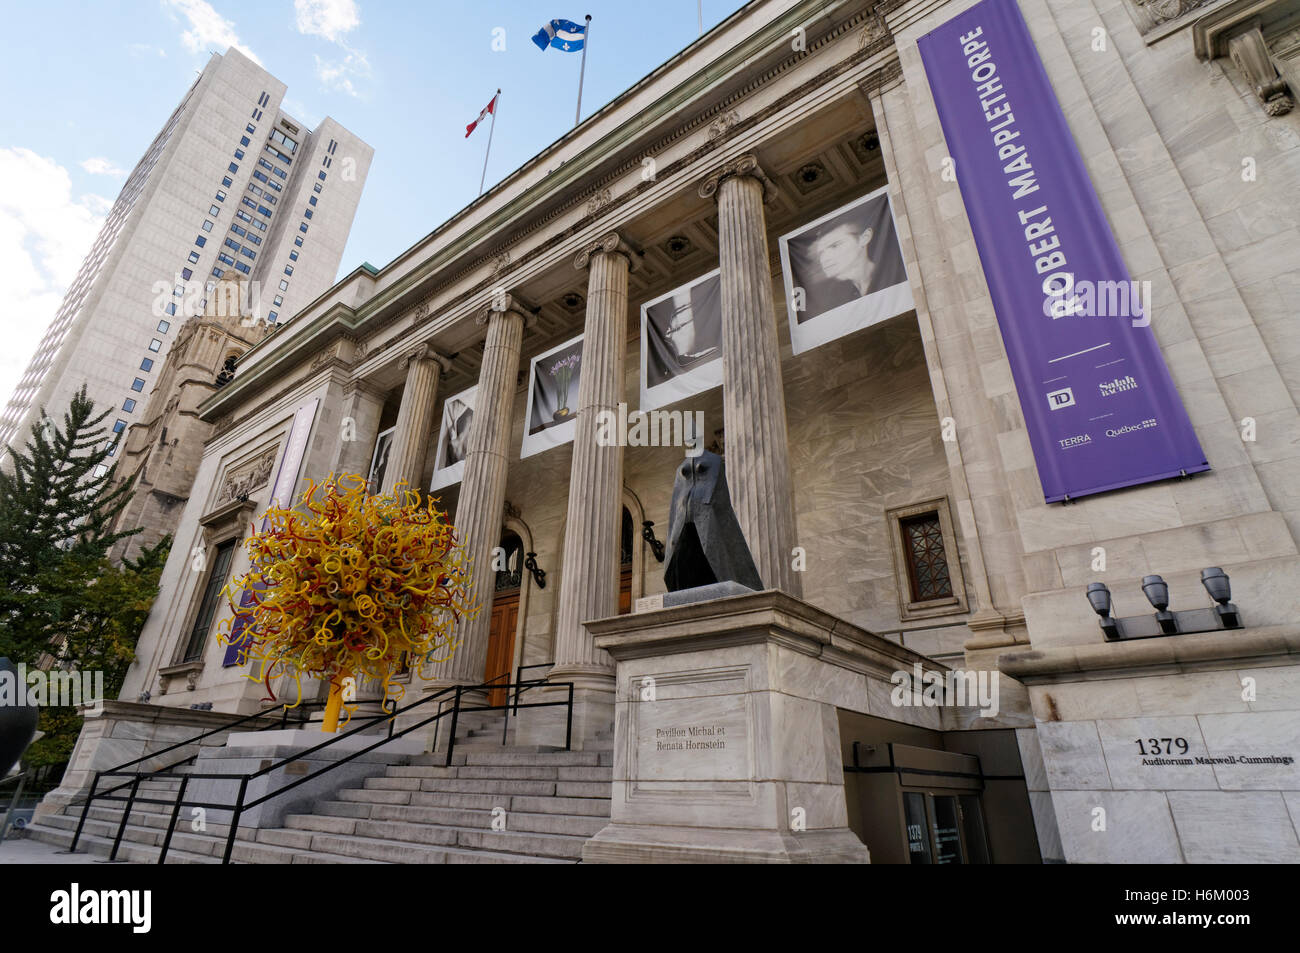 Montreal Museum of Fine Arts or Musee des Beaux-Arts, Montreal, Quebec, Canada Stock Photo